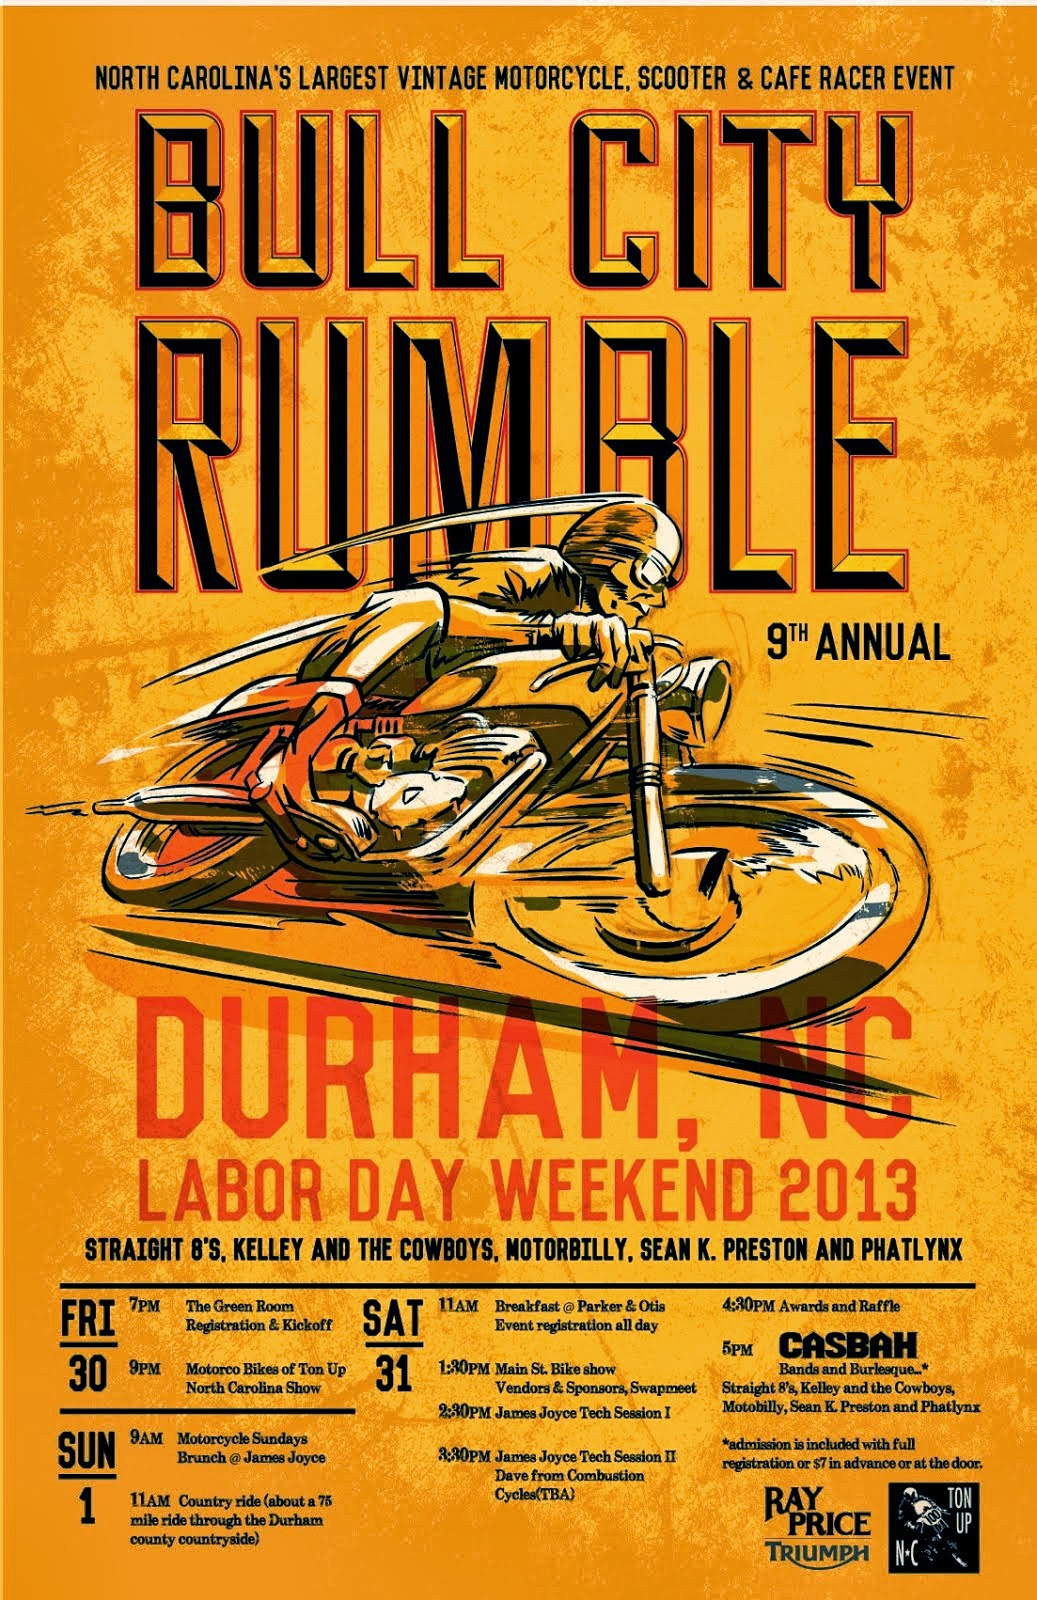 2013 Bull City Rumble Poster